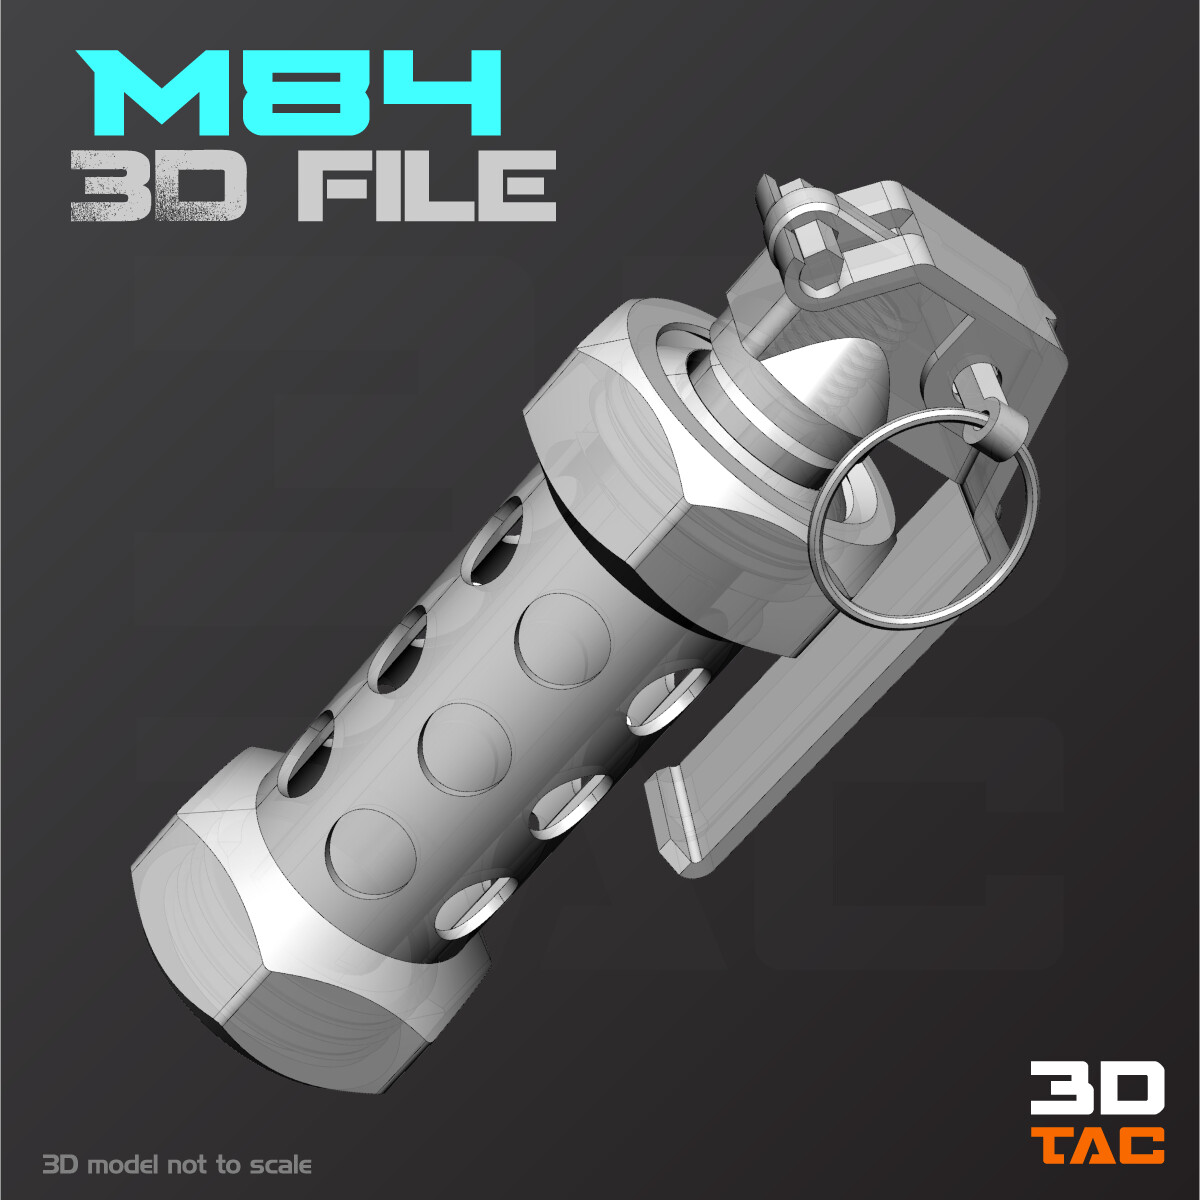 M84 Flashbang Dummy / Archivo 3D